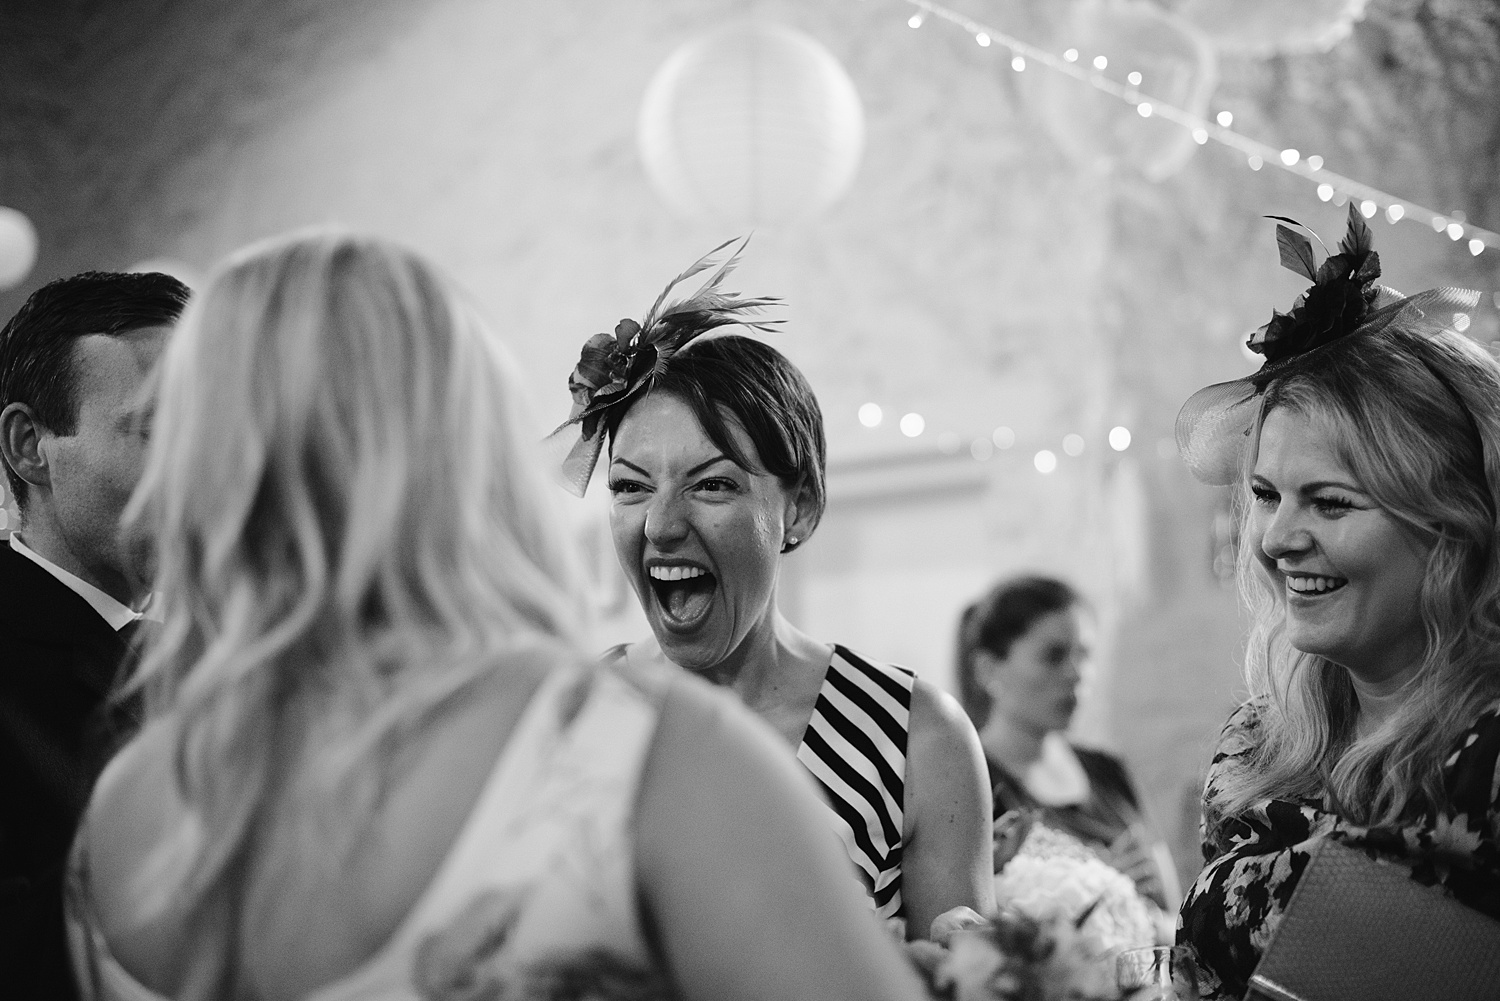 Claire-Fleck-Scottish-wedding-photography-2017__0114.jpg